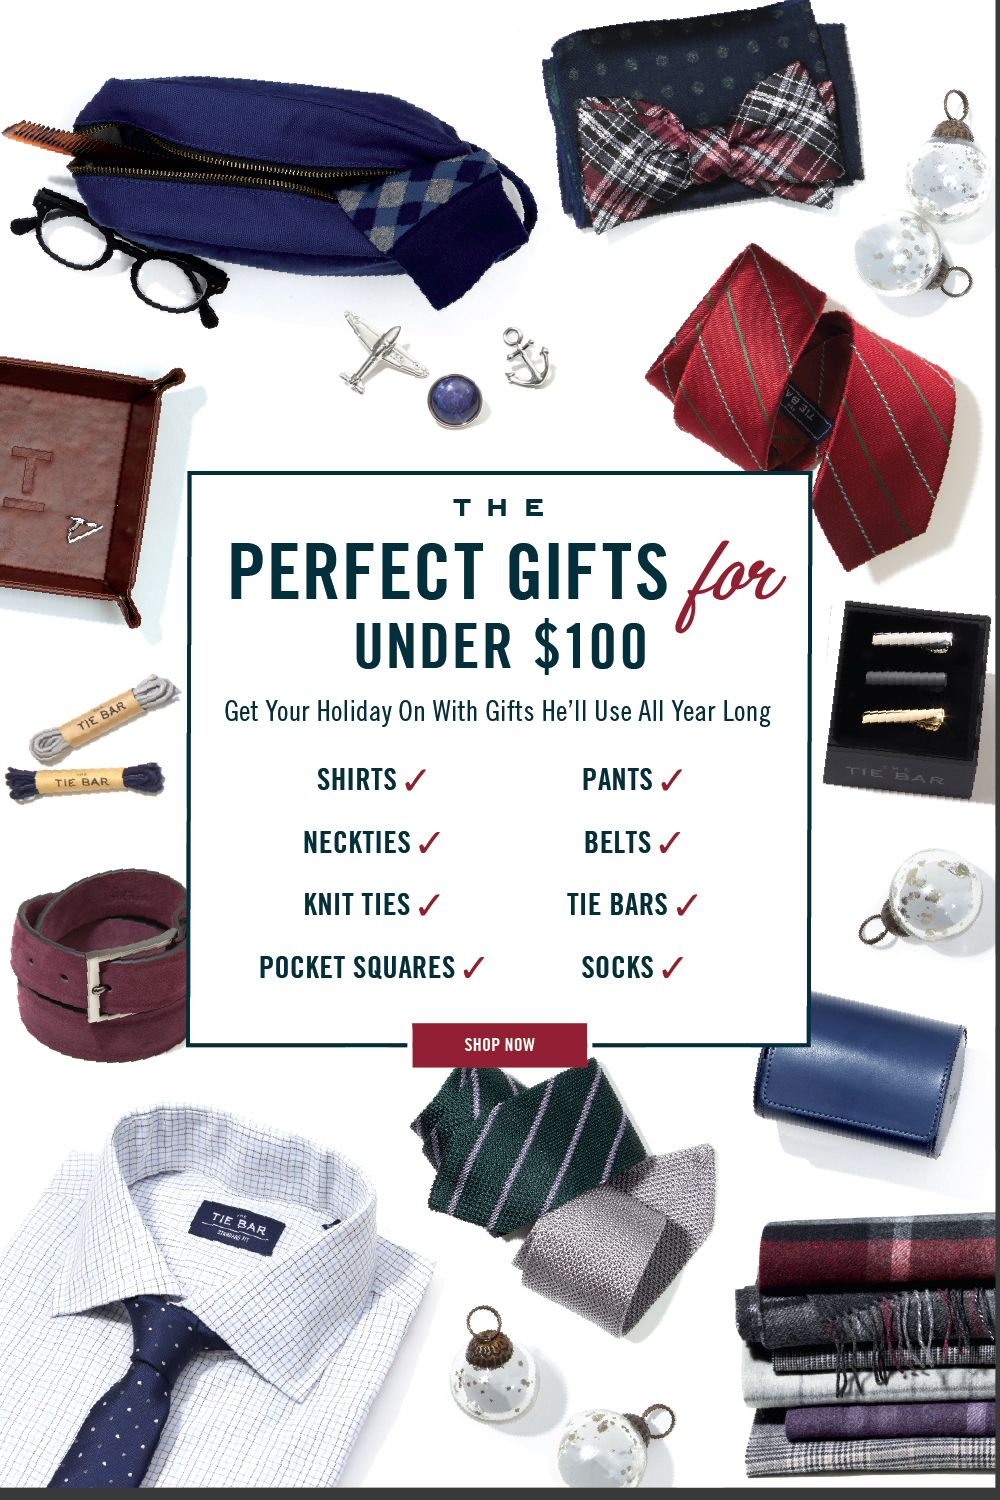 e6a0ded8b Find the perfect gifts for any guy in your life with shirts, ties, pants,  and accessories from The Tie Bar. #gifting #gifts #menswear #mensfashion #  ...